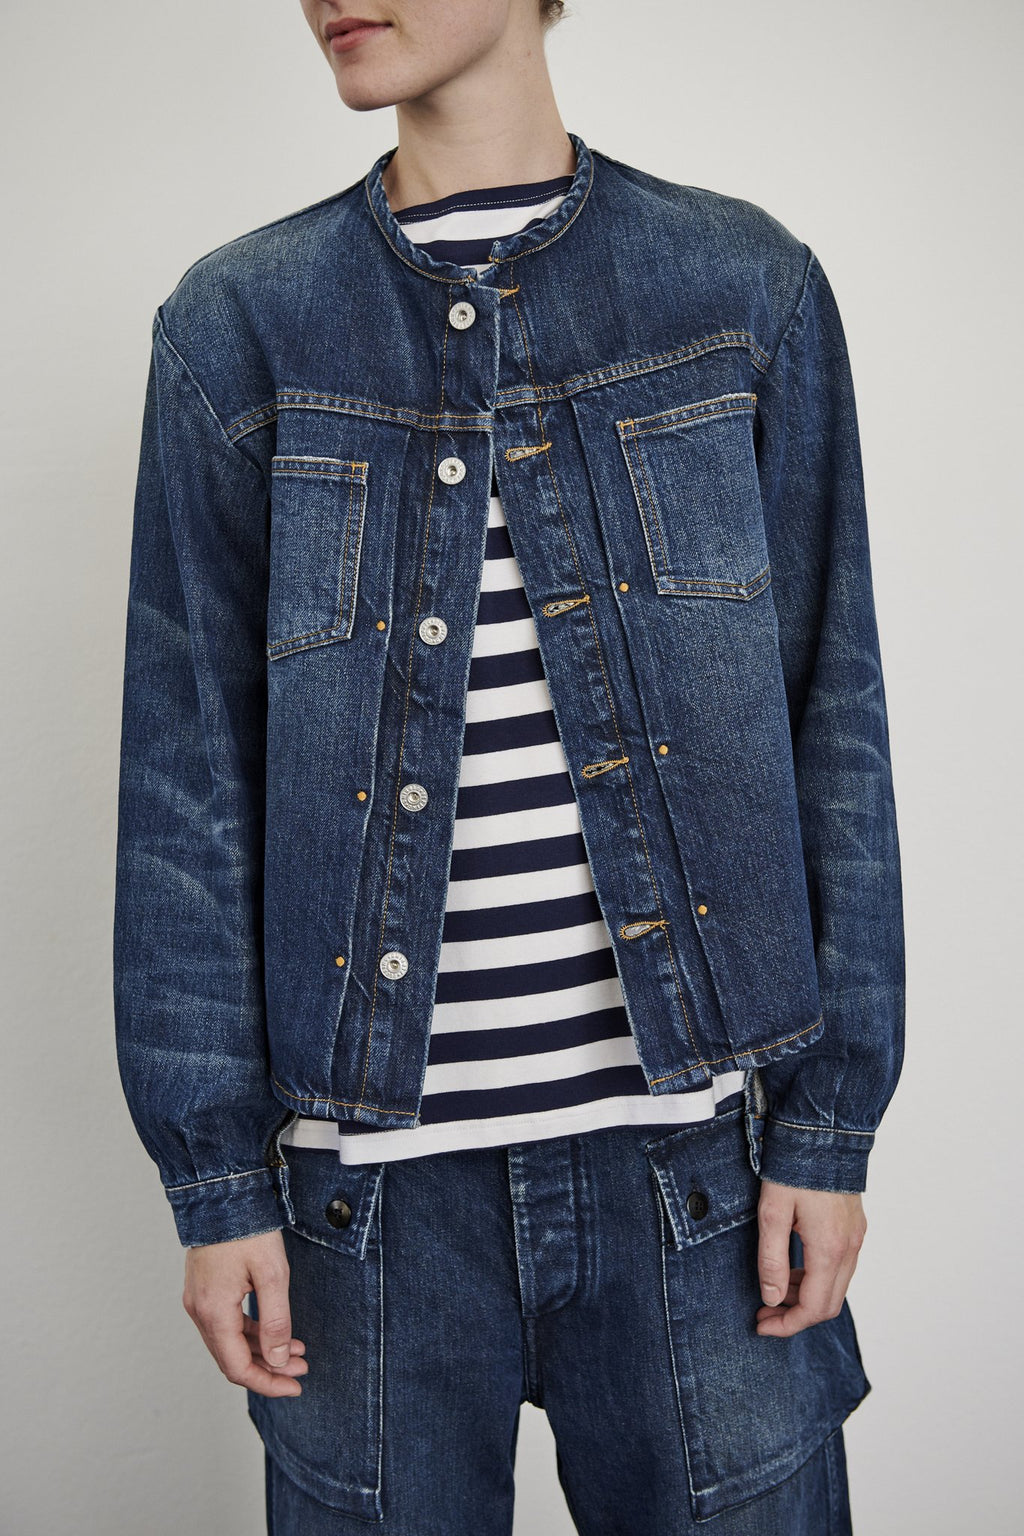 PEPPINOPEPPINO JEANS - TYPE 16 -W JACKET